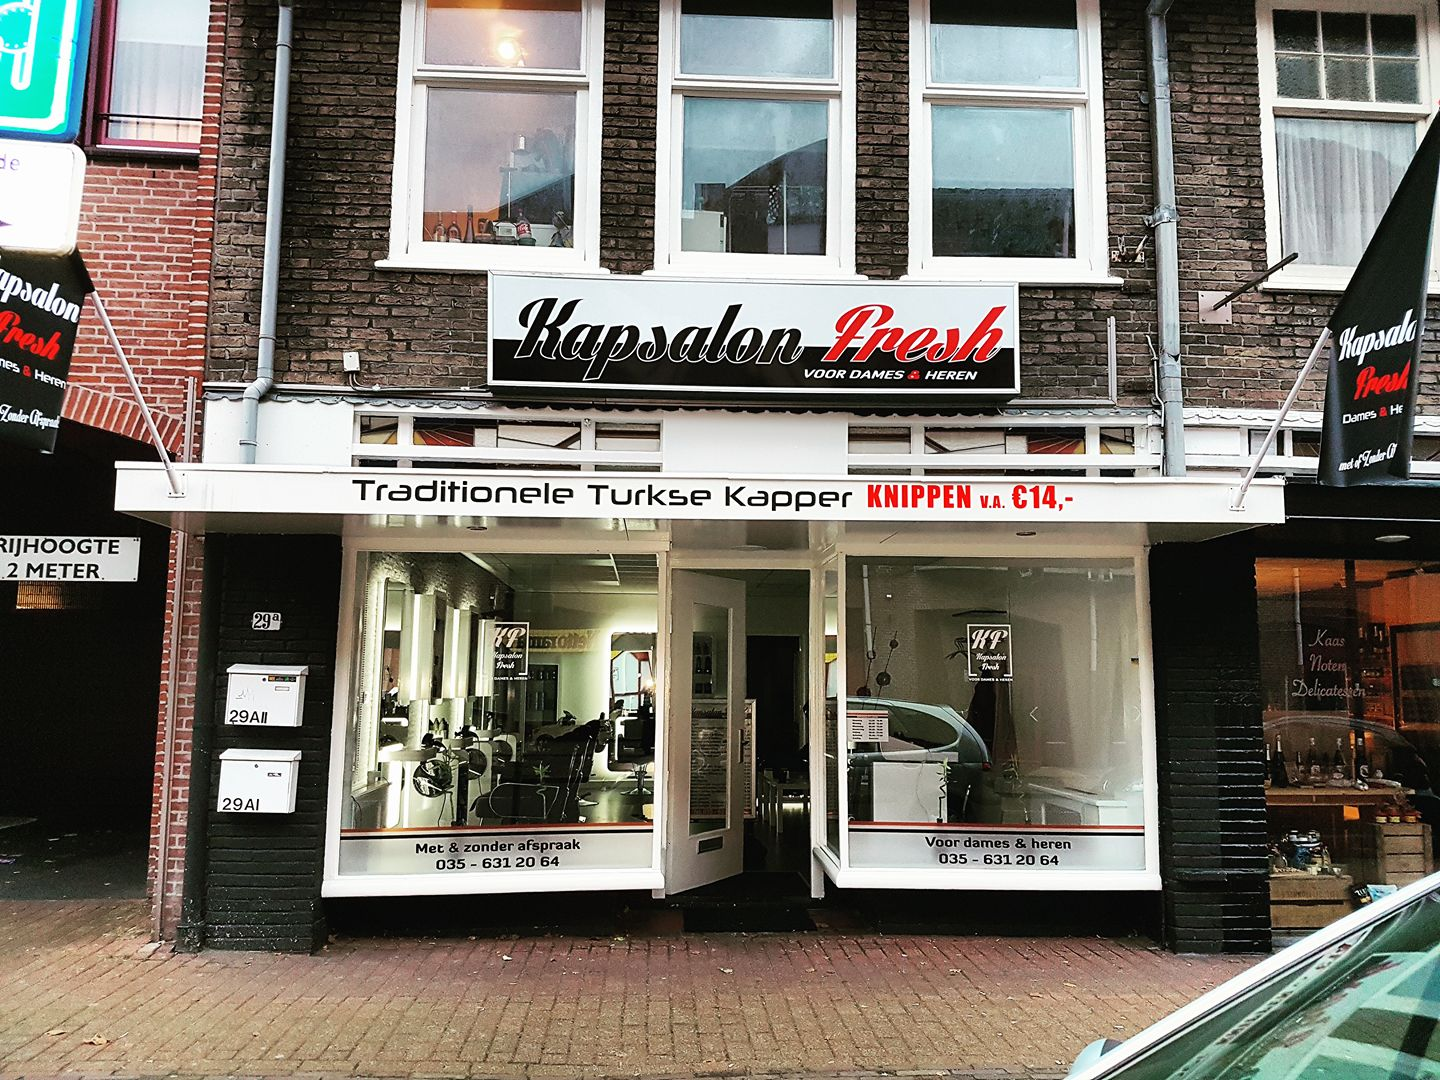 Kapsalon Fresh de enige traditionele Turkse kapper in Bussum